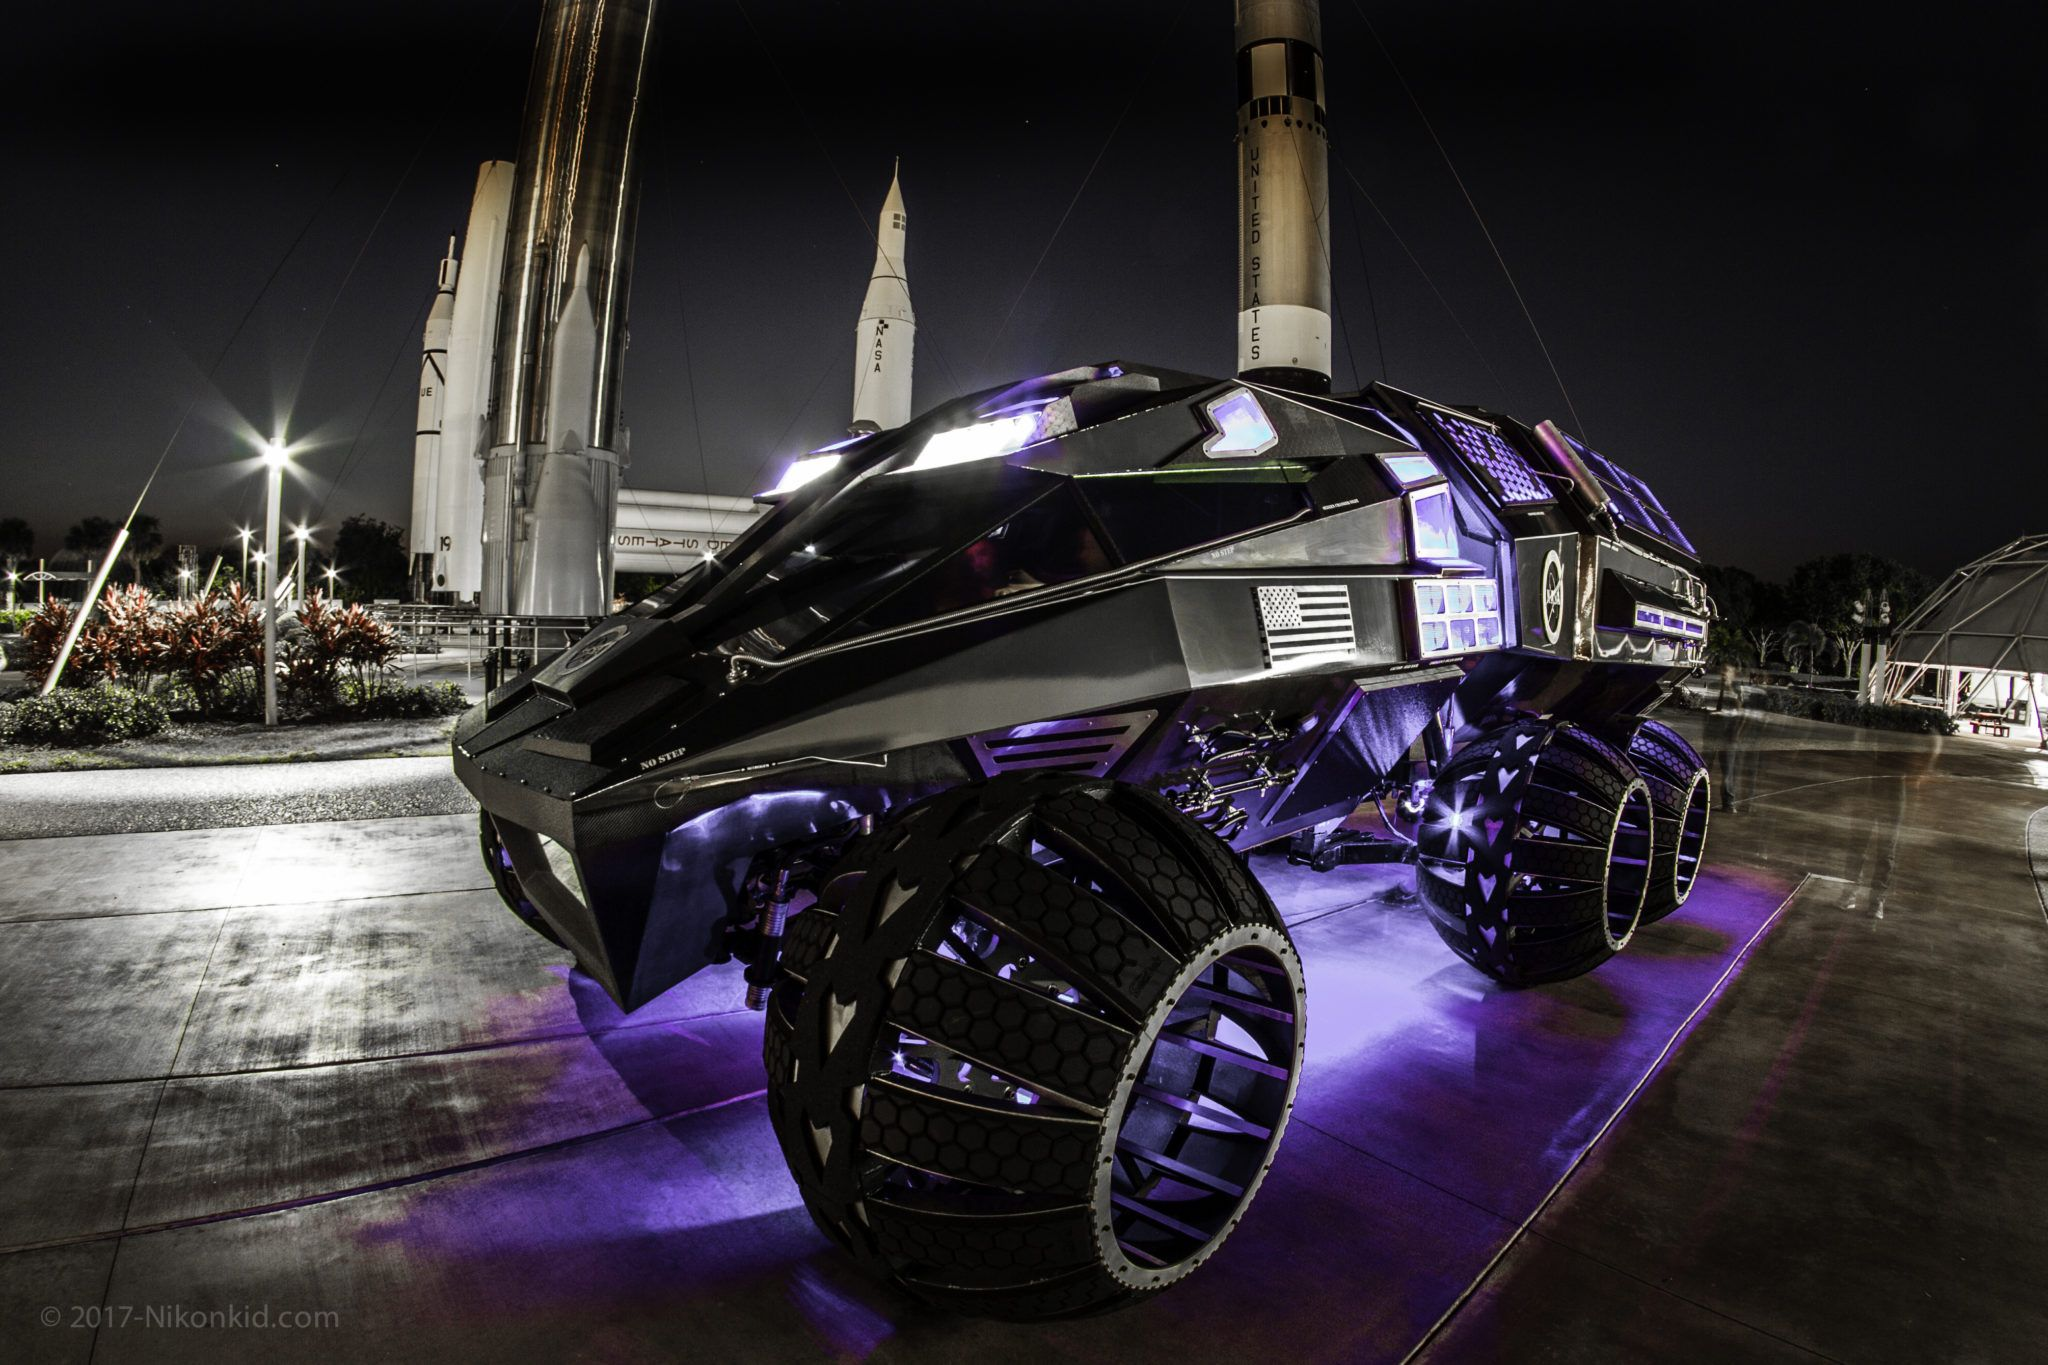 2020 Mars Rover Parker Brothers Concepts Mars rover